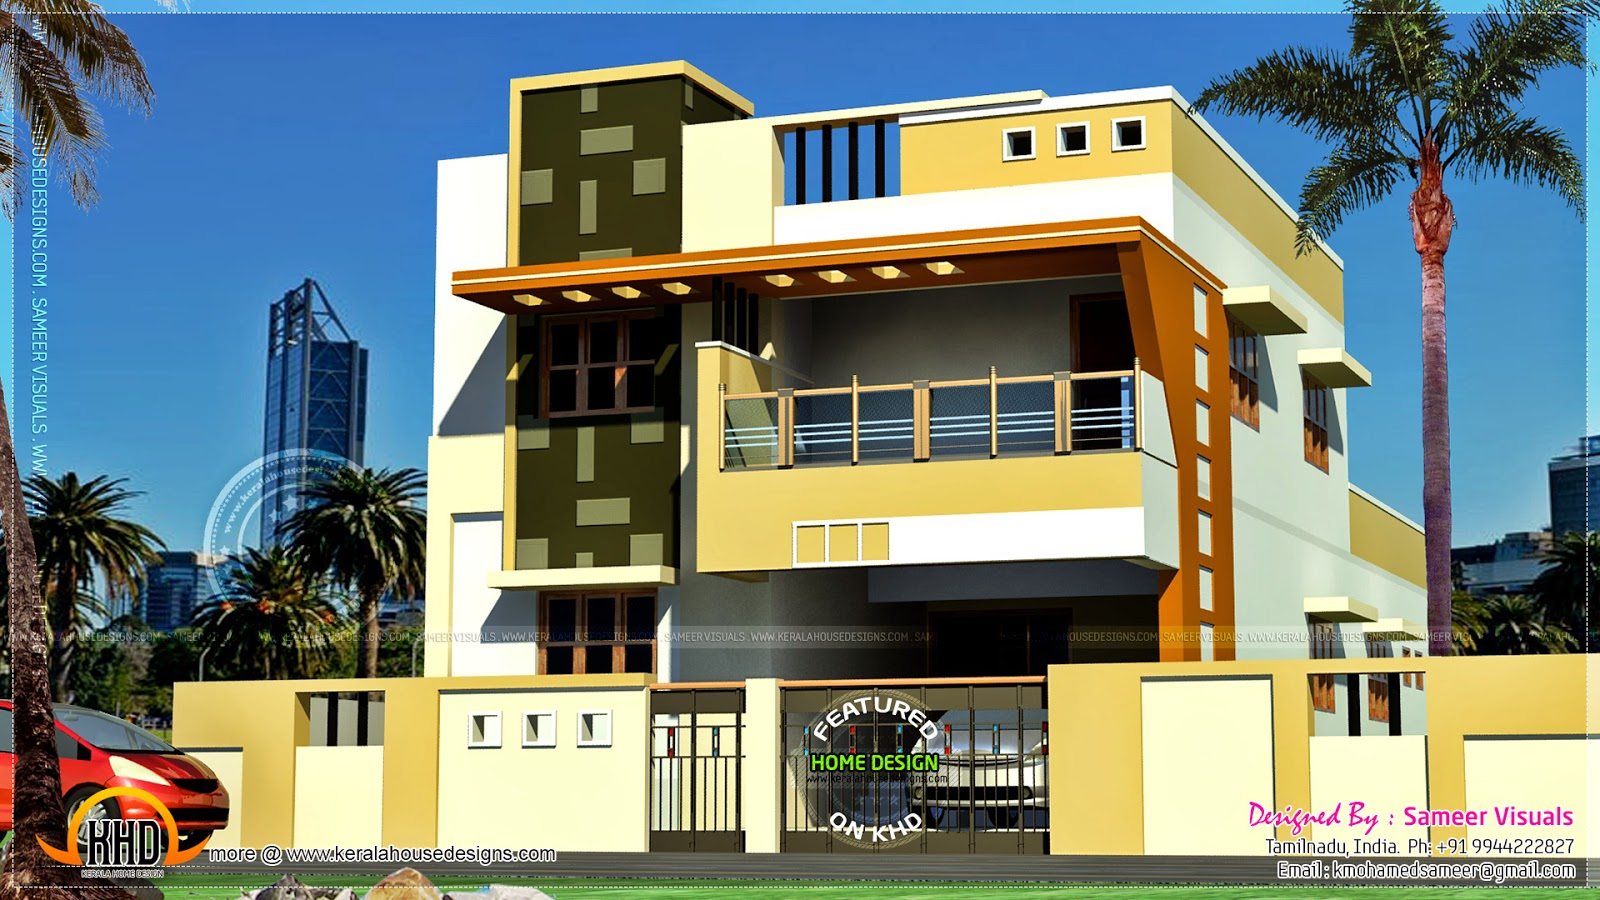 Modern south indian house design kerala home design and for Free indian house designs